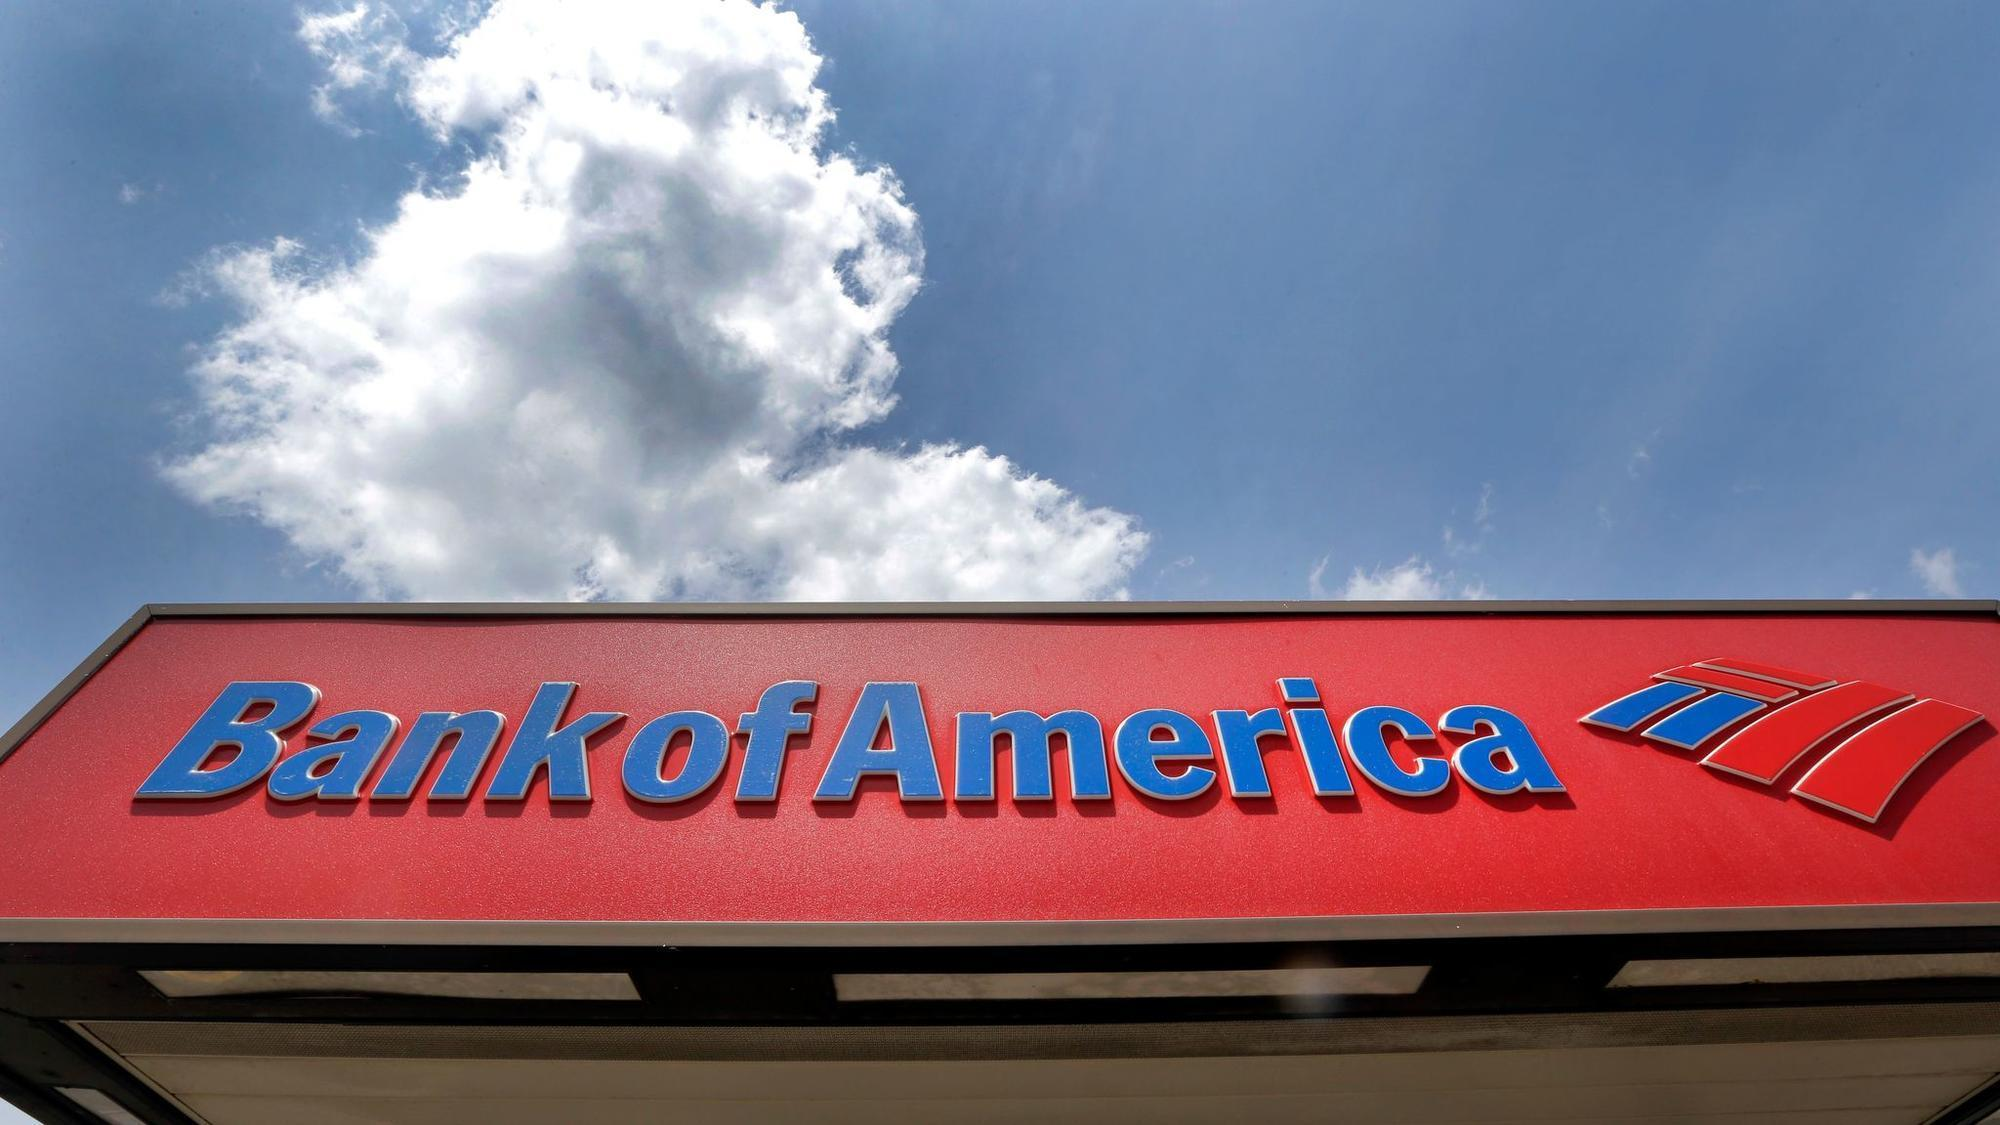 Bank of America ends free checking option, causing customer uproar